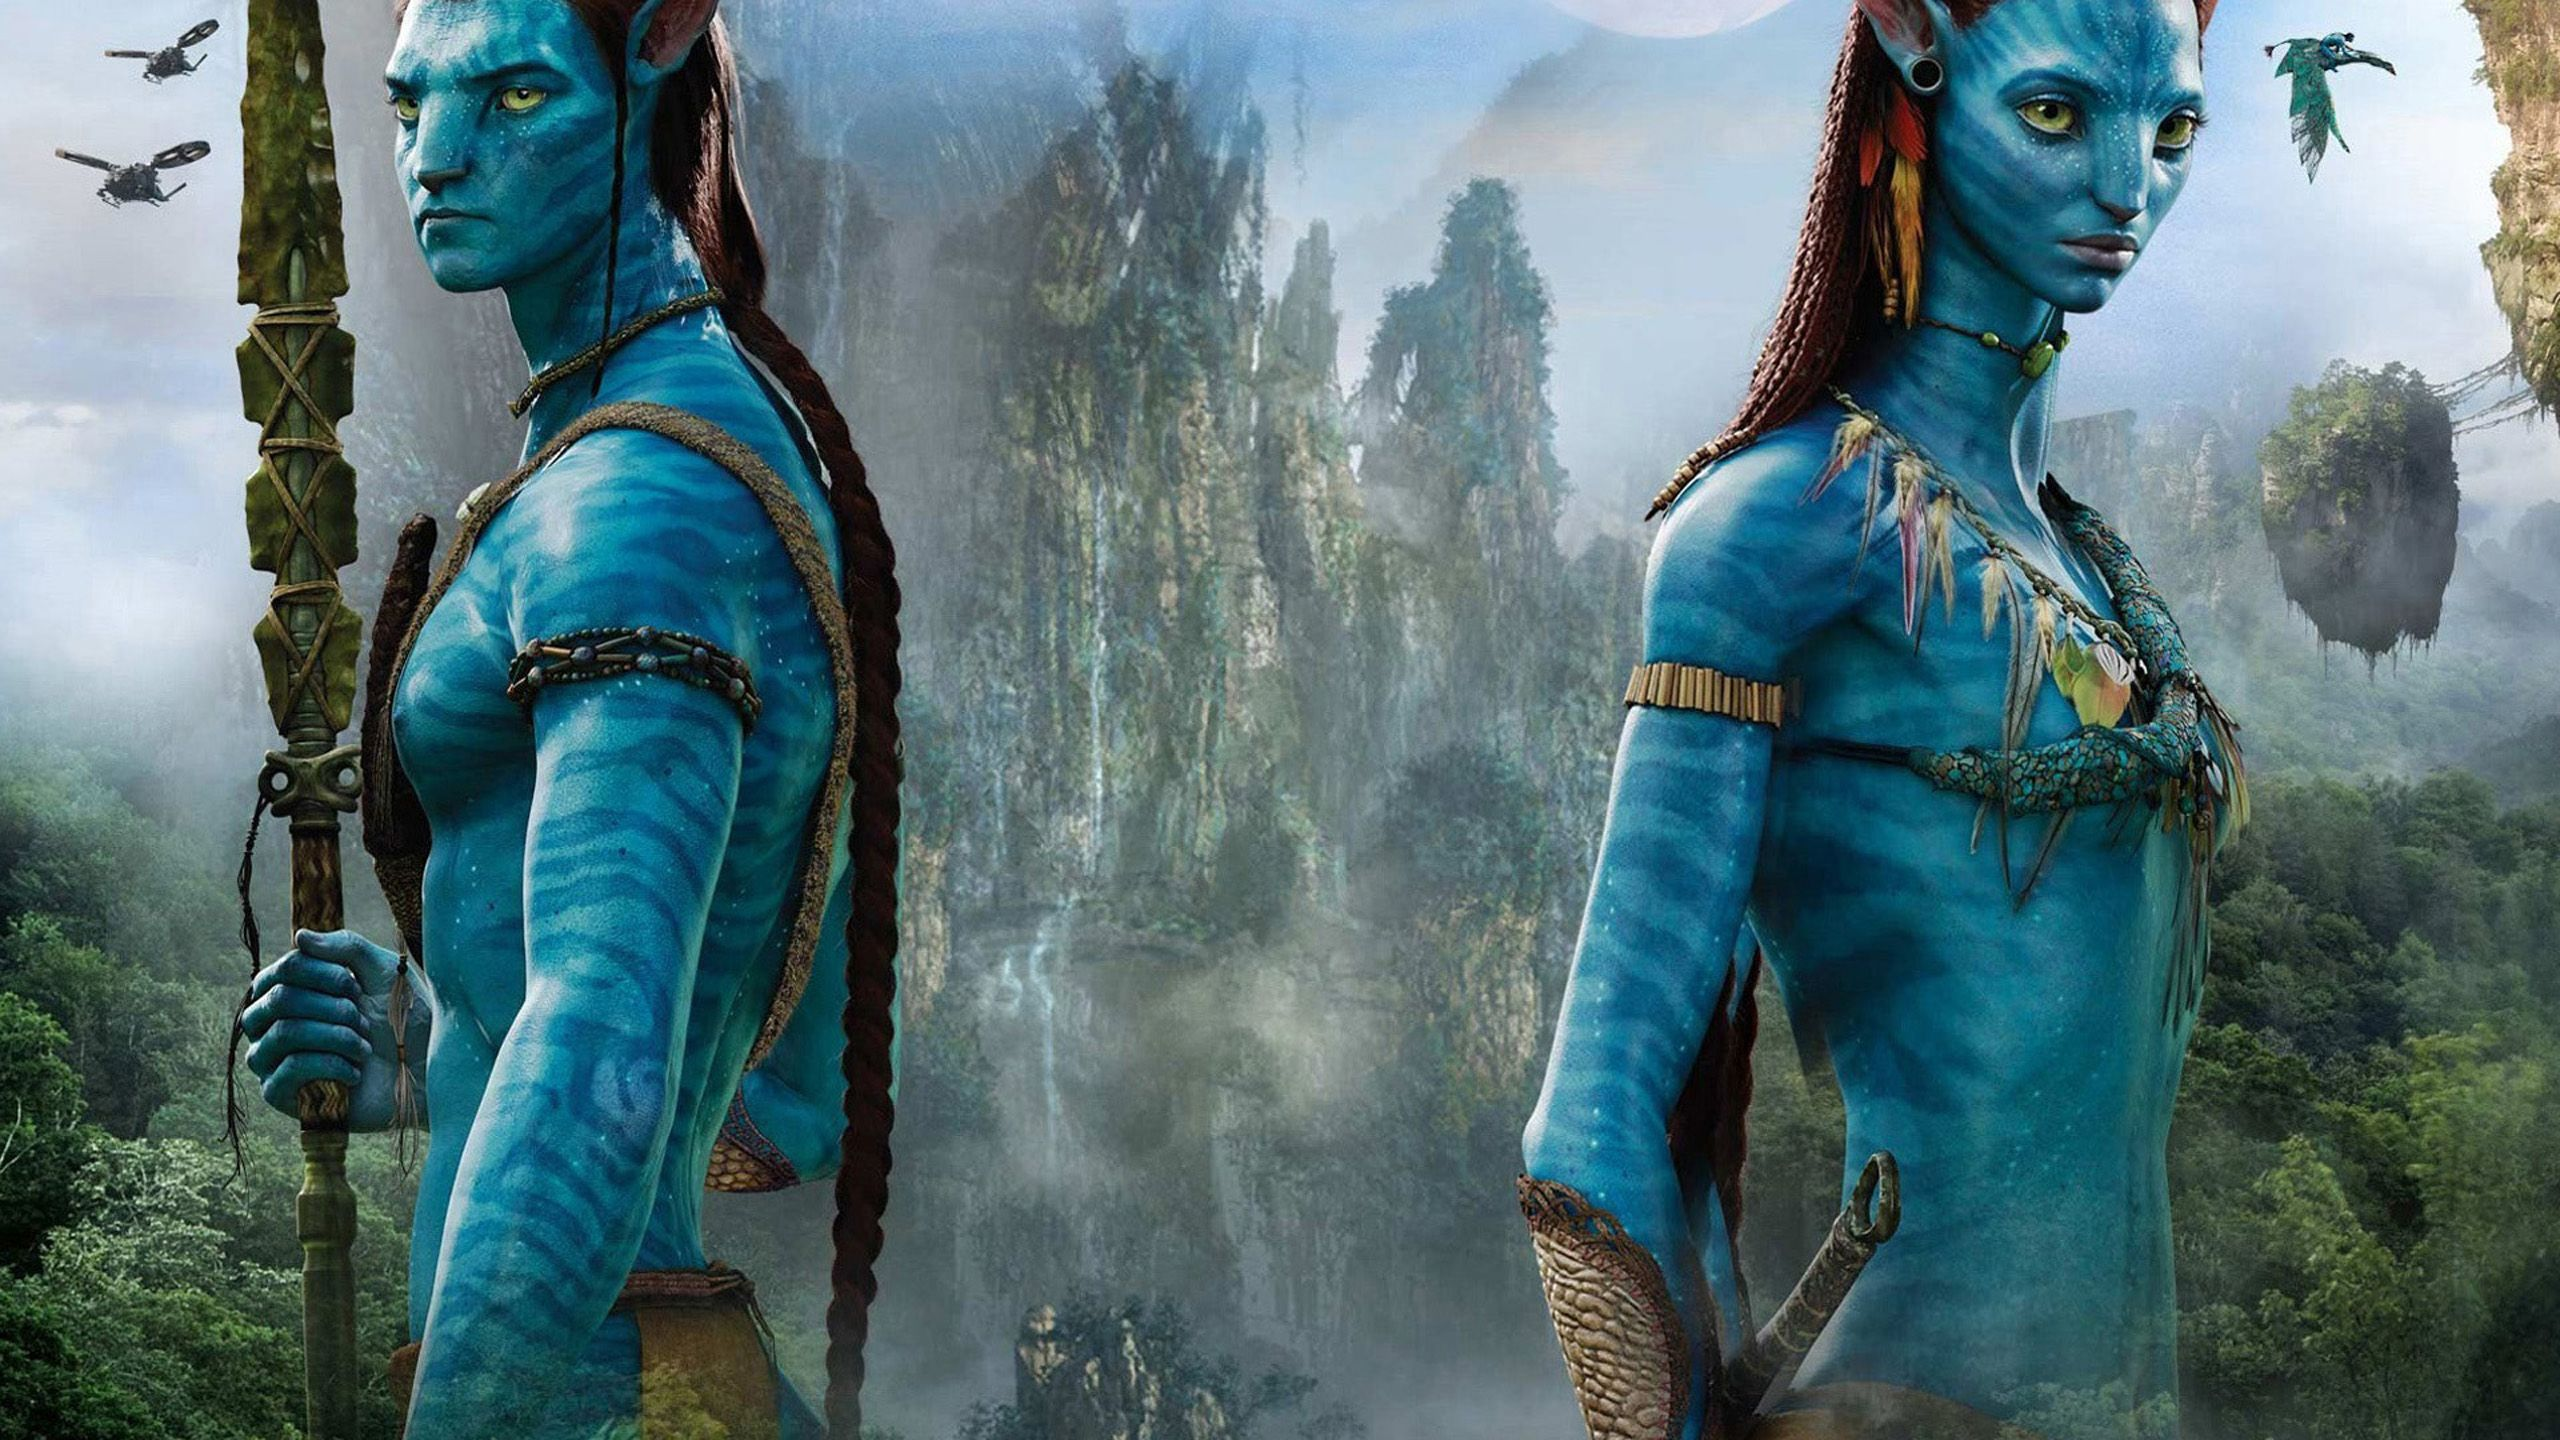 Amazing Wallpaper Movie Avatar 2 - 64507aa0220193fe61b9a3909f3e1c24  Picture_475474.jpg